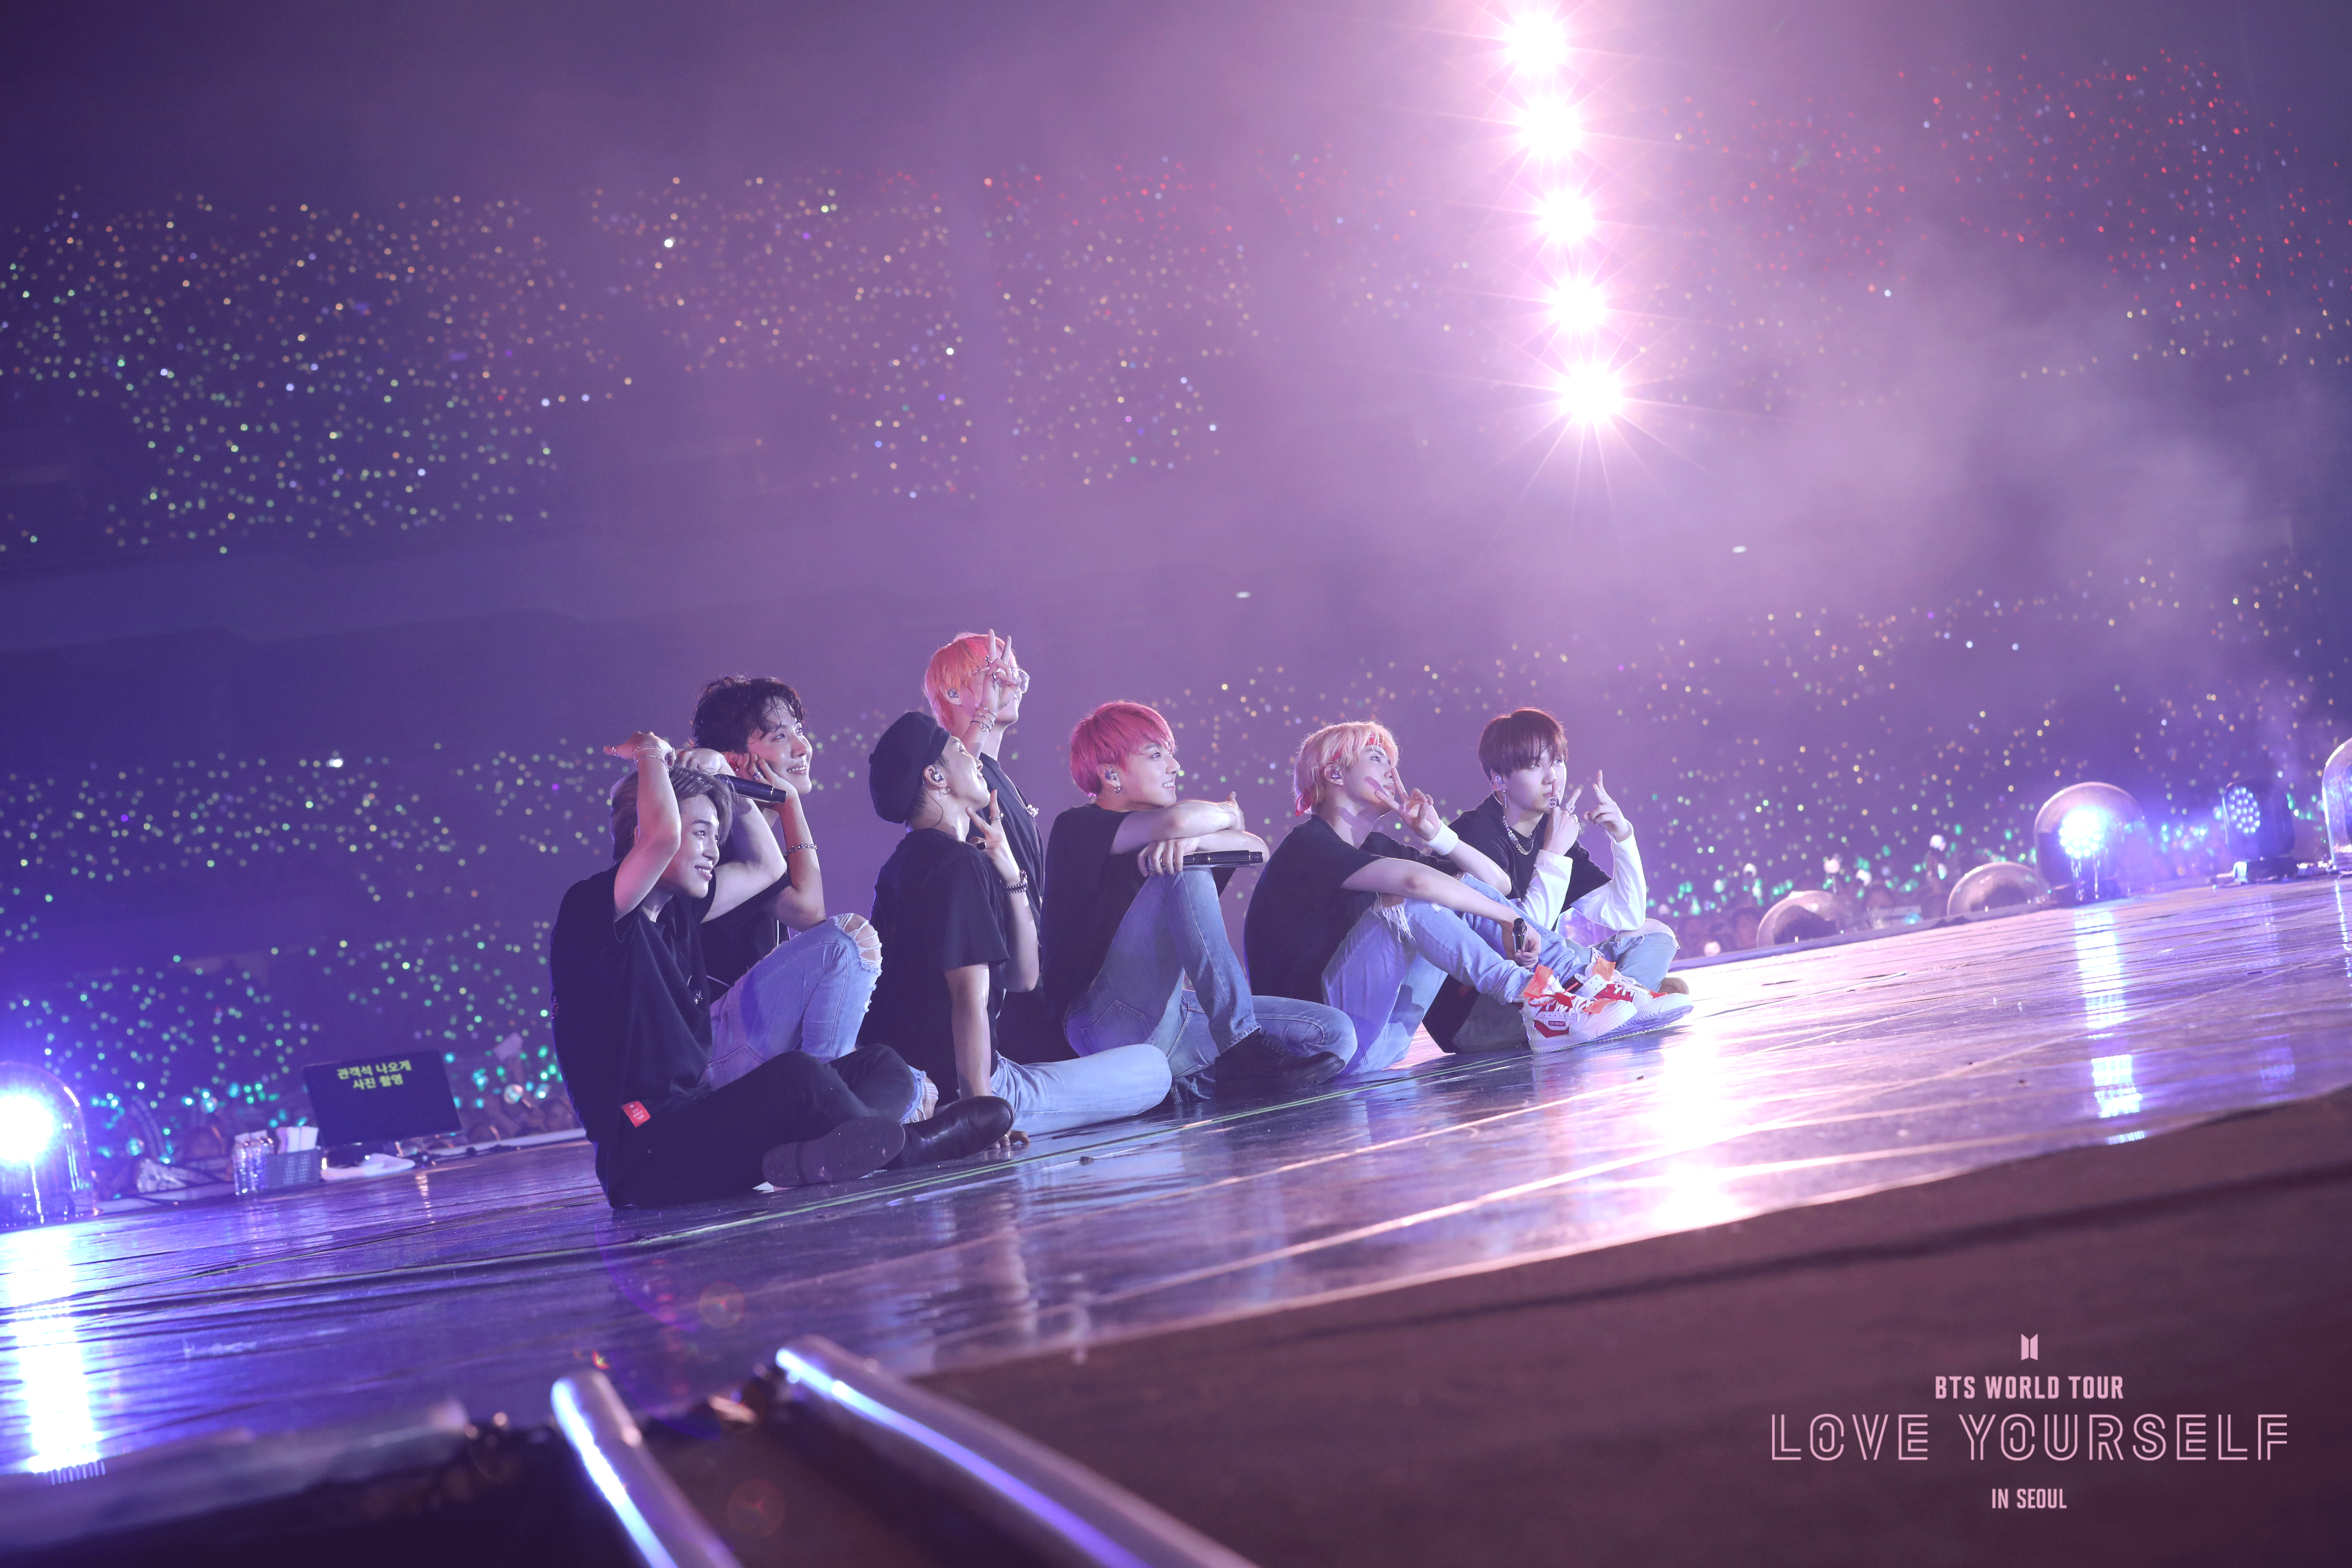 BTS LOVE YOURSELF IN SEOUL - photo 3